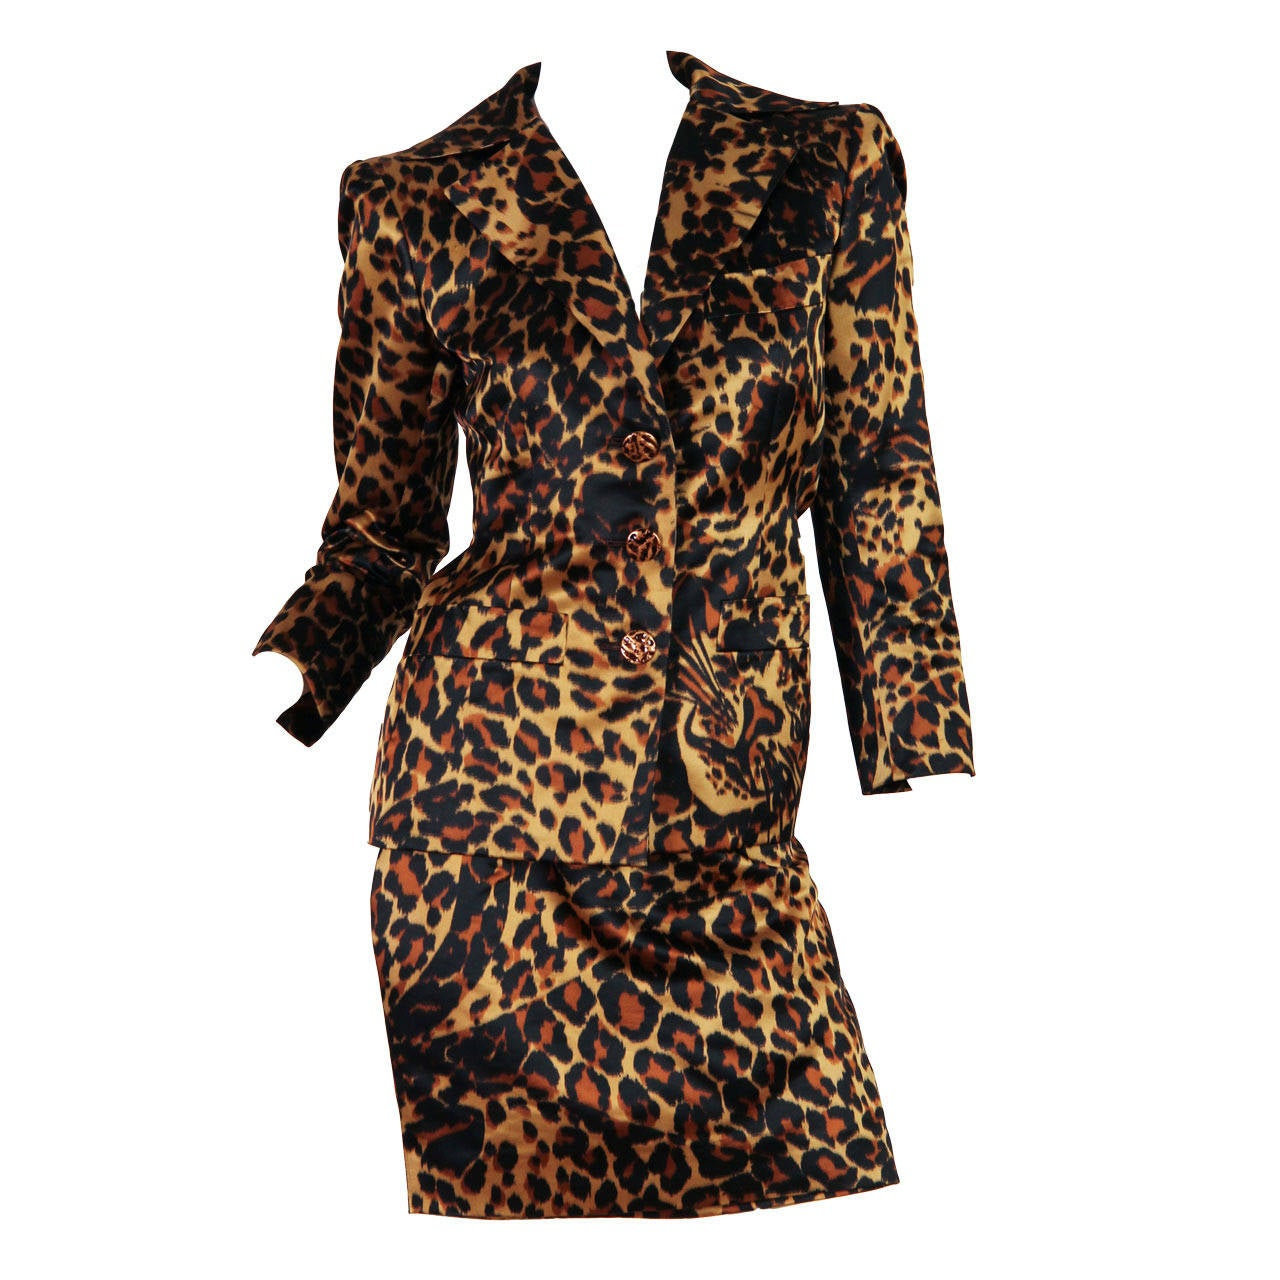 Yves Saint Laurent Documented Haute Couture Leopard Suit